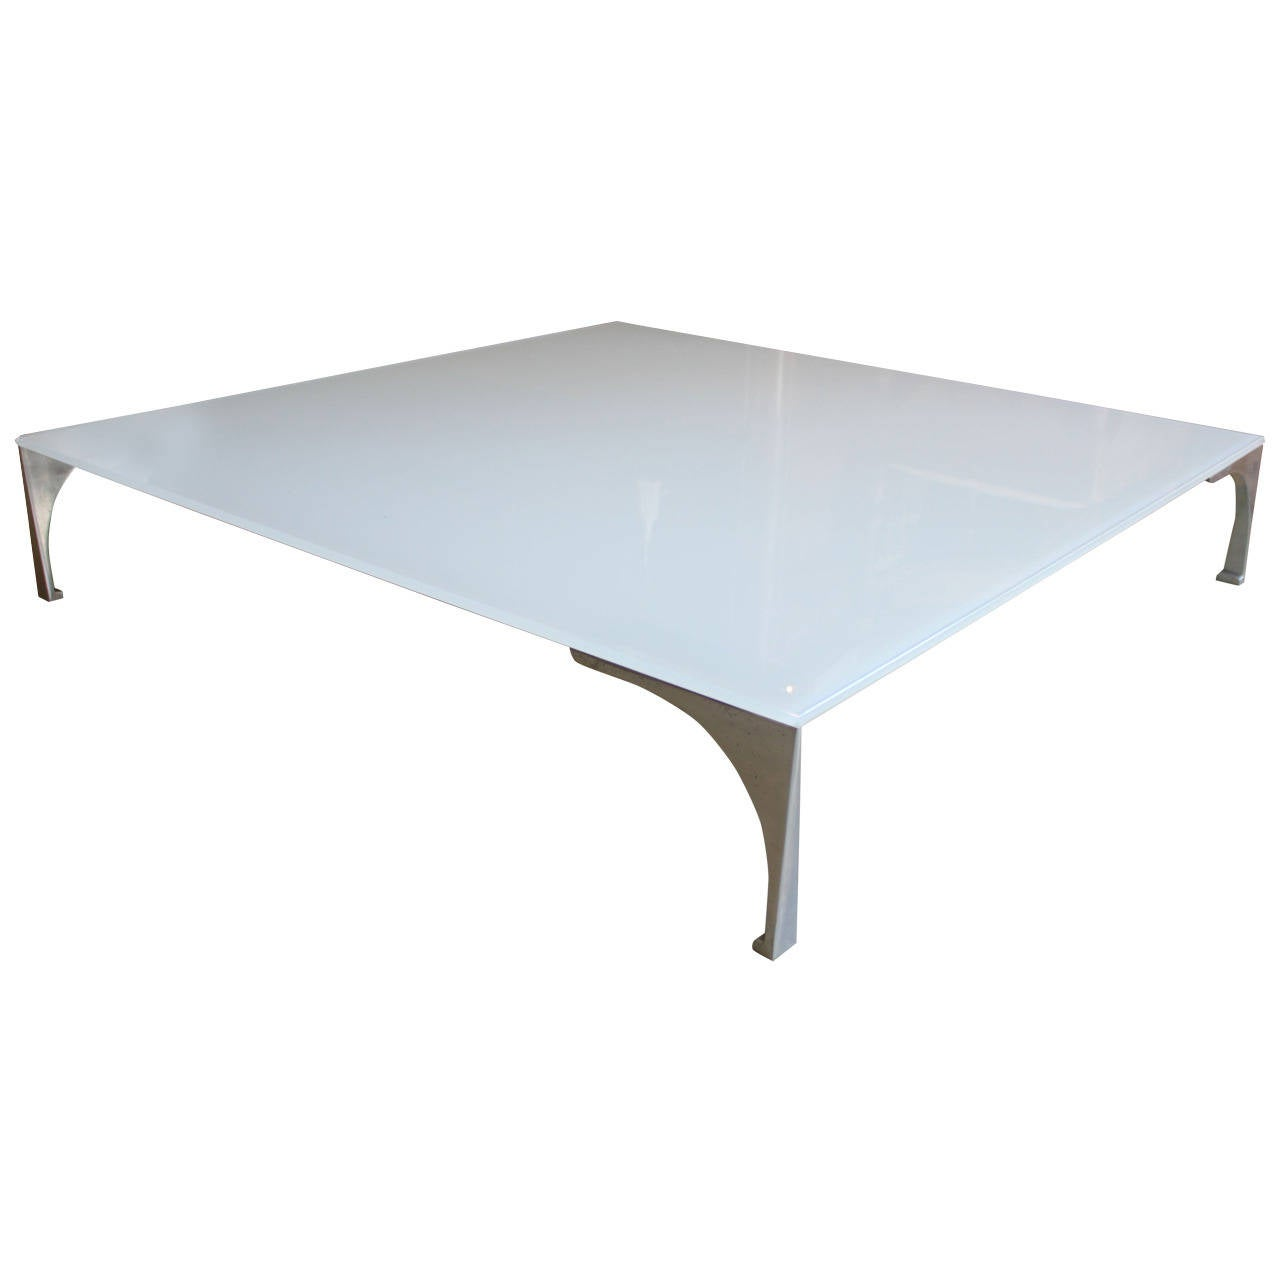 Roche bobois metropolis low coffee or cocktail table 20th - Table ovale marbre roche bobois ...